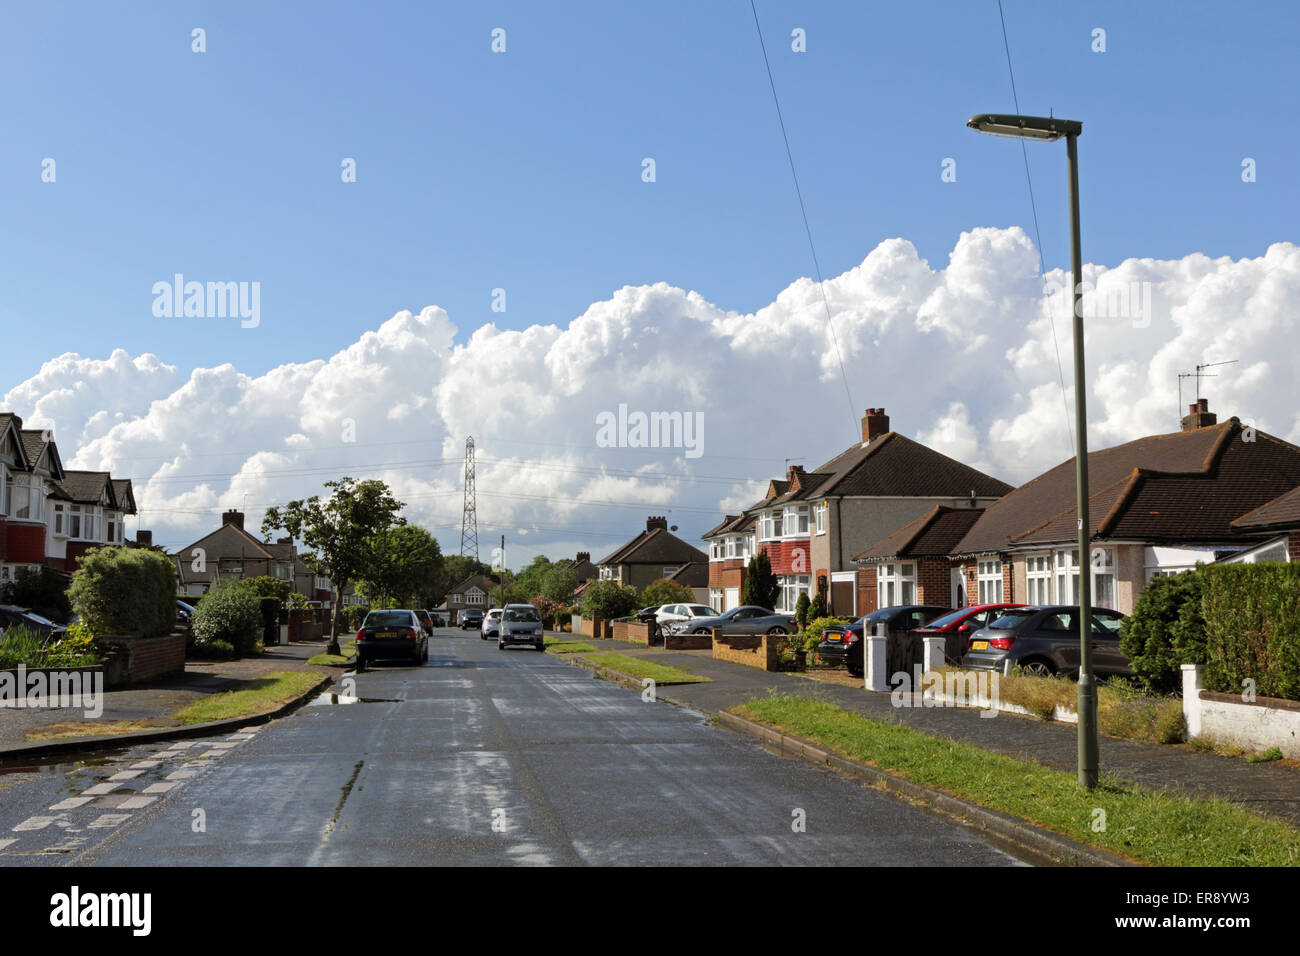 Epsom Surrey England. 29th May 2015. On a day of rain, followed by sunshine and showers towering cumulonimbus storm - Stock Image